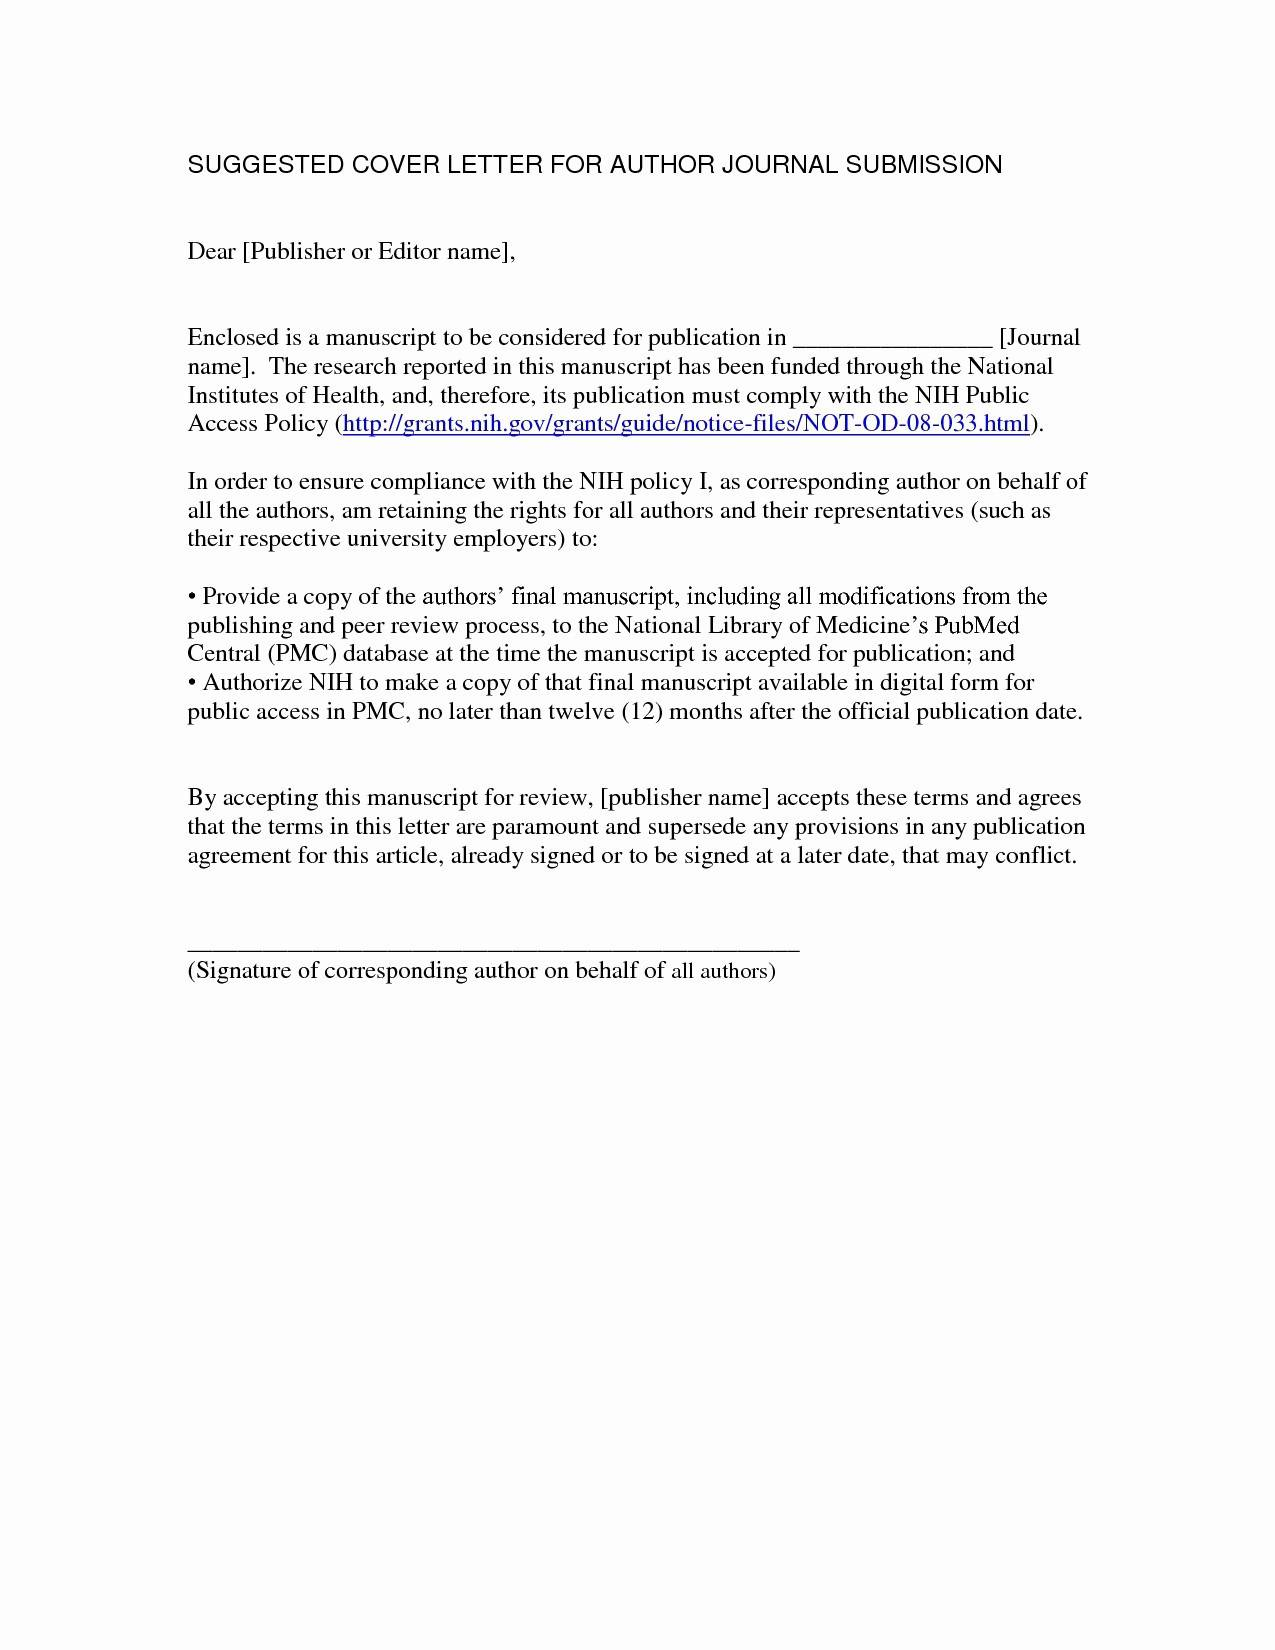 Seller Contract Template